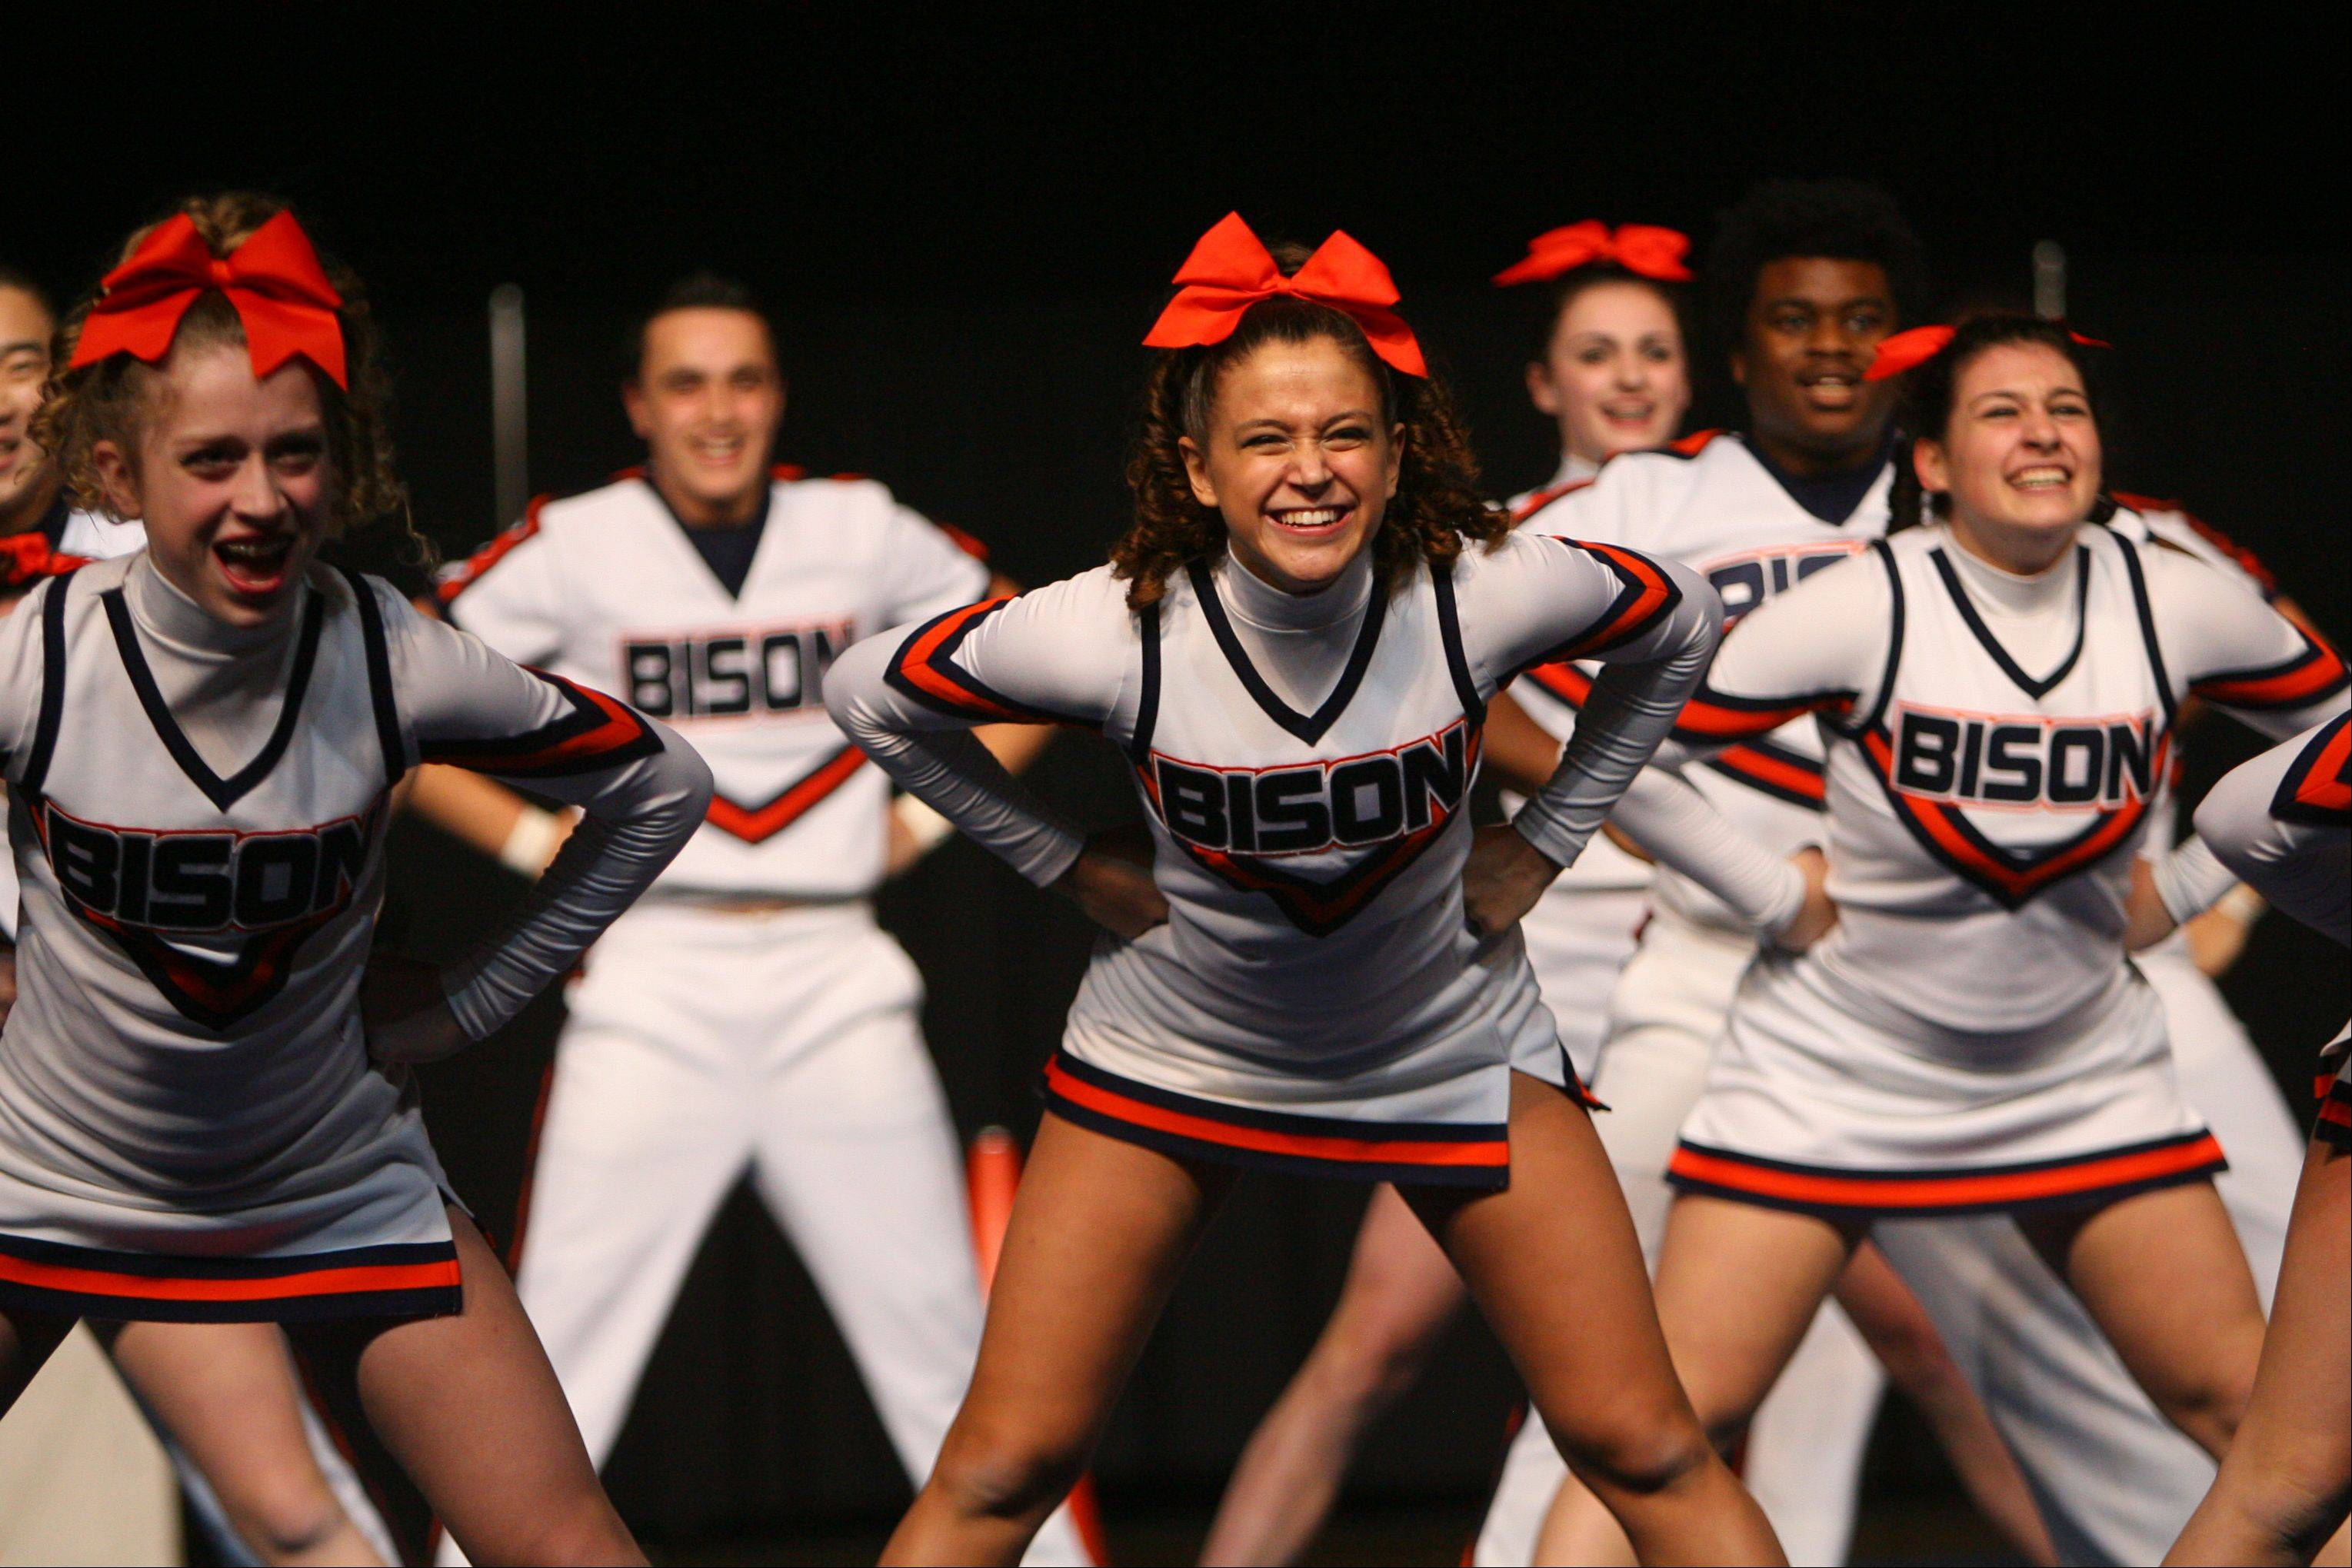 Buffalo Grove High School's coed team posted the highest score in Friday's prelims at the state cheerleading competition in Bloomington.